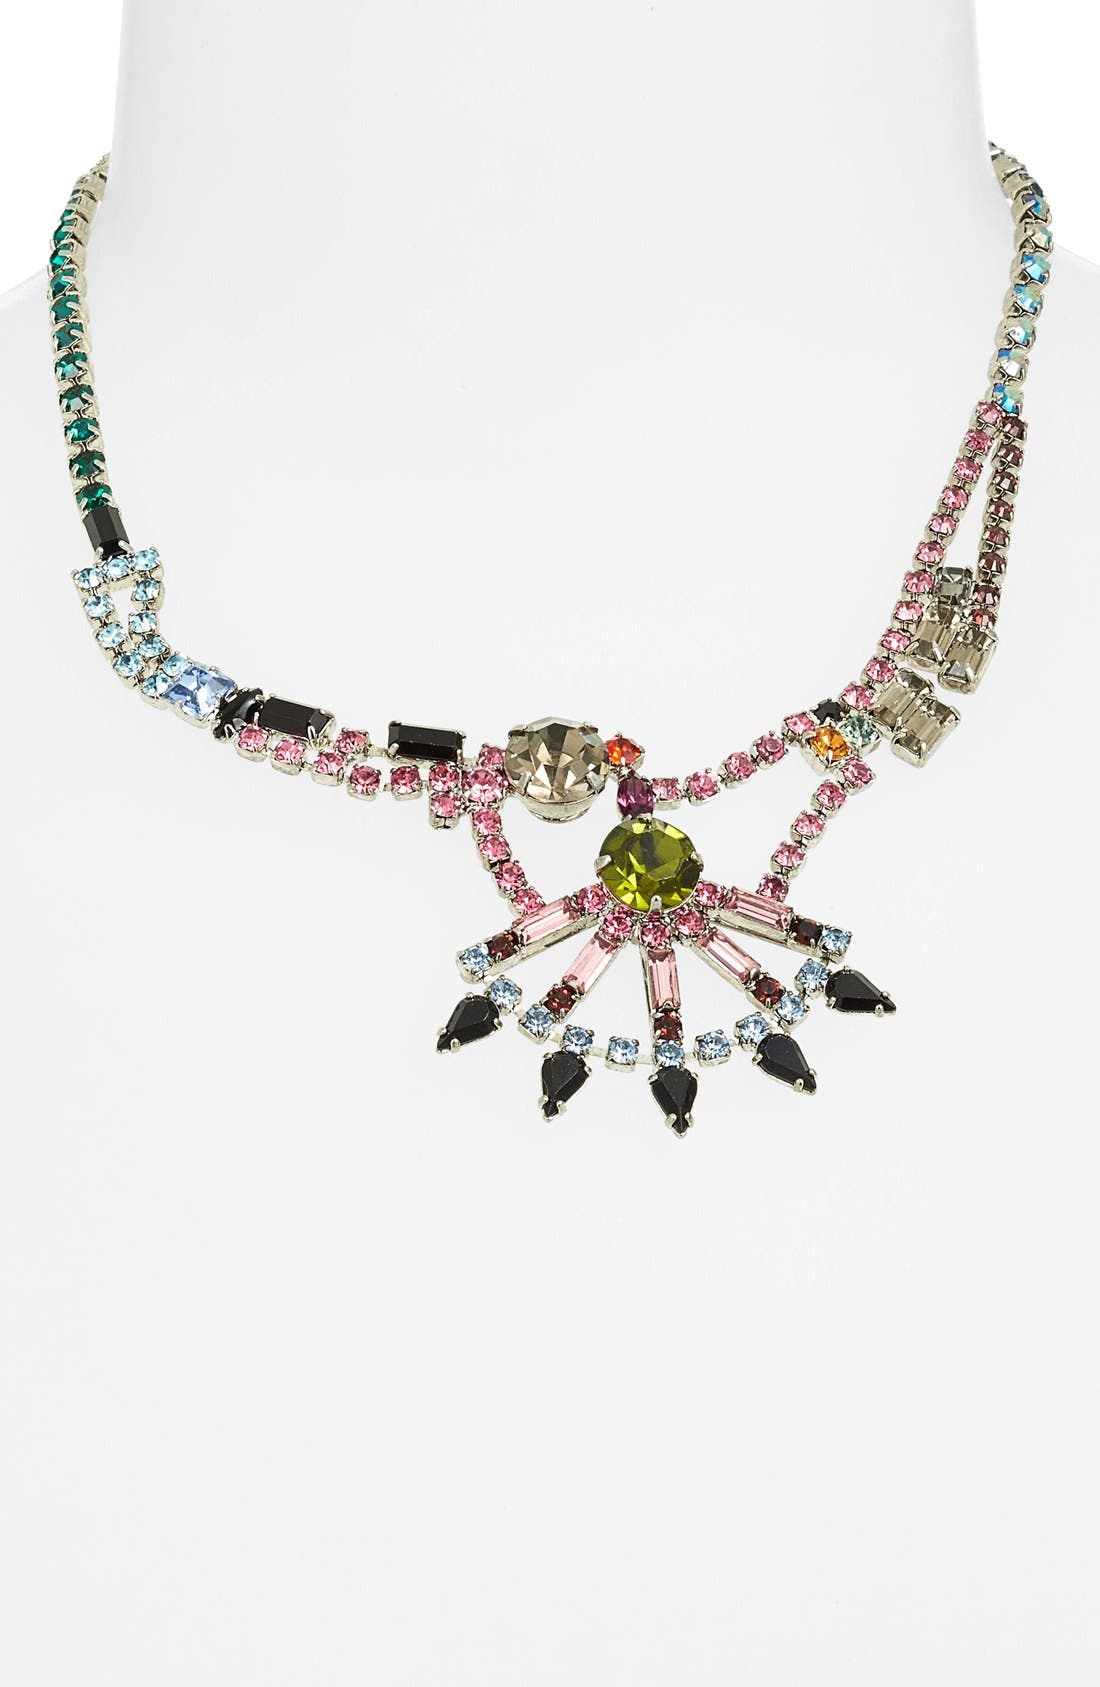 Alternate Image 1 Selected - Tom Binns 'Faux Real' Crystal Collar Necklace